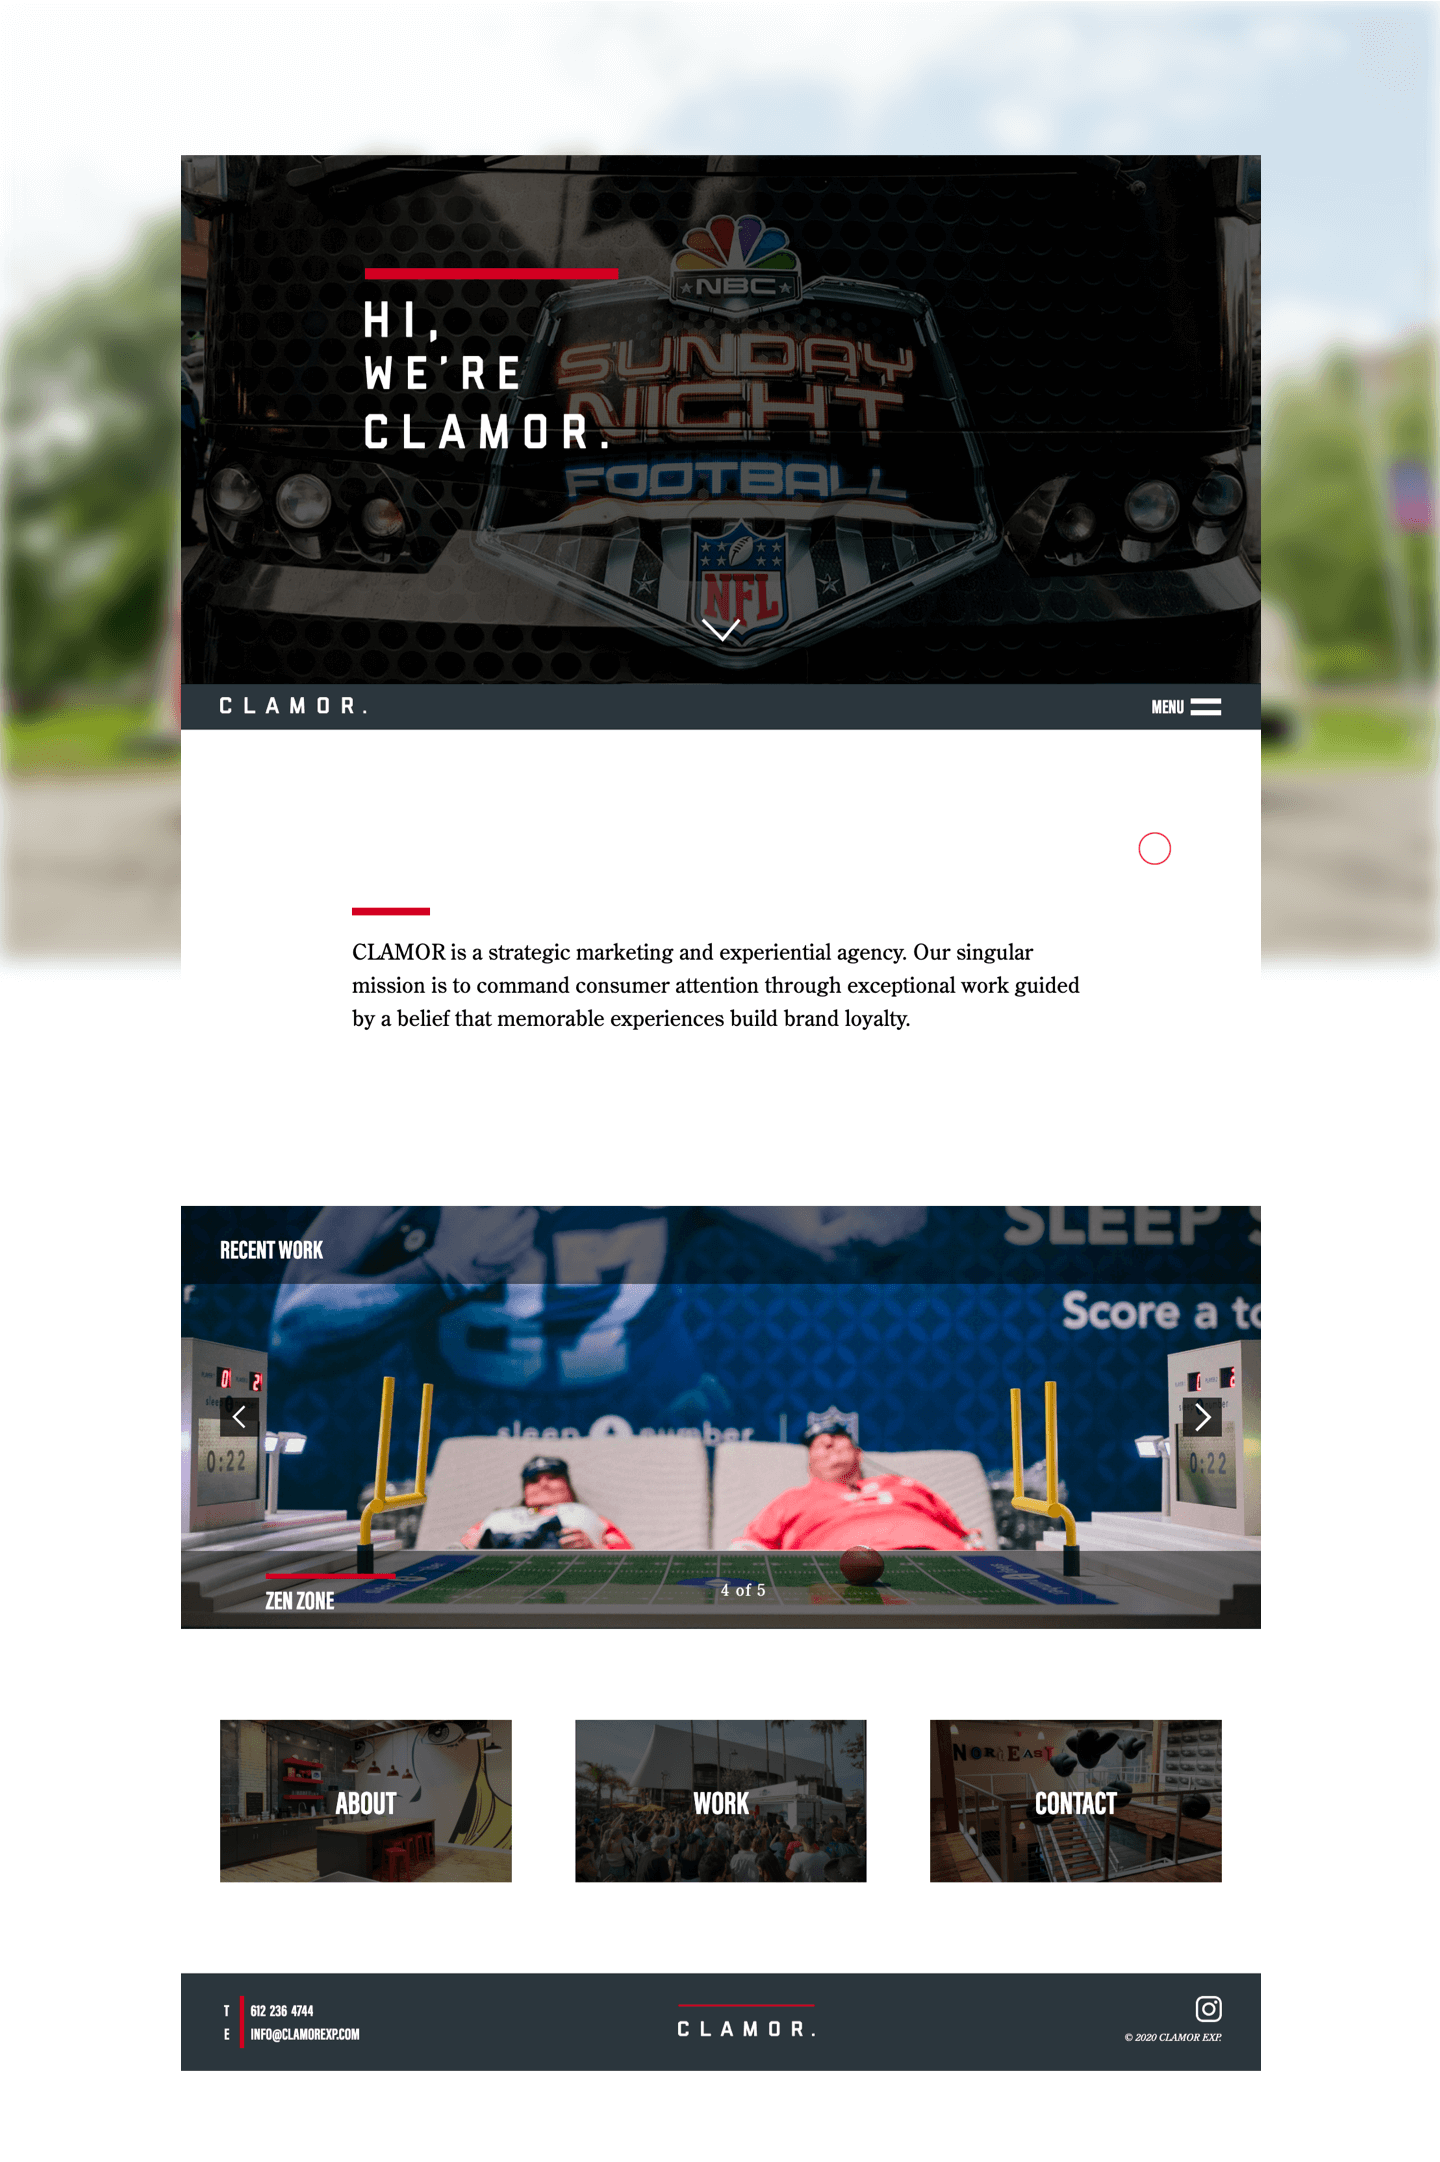 A full height image of Clamor 's Homepage.